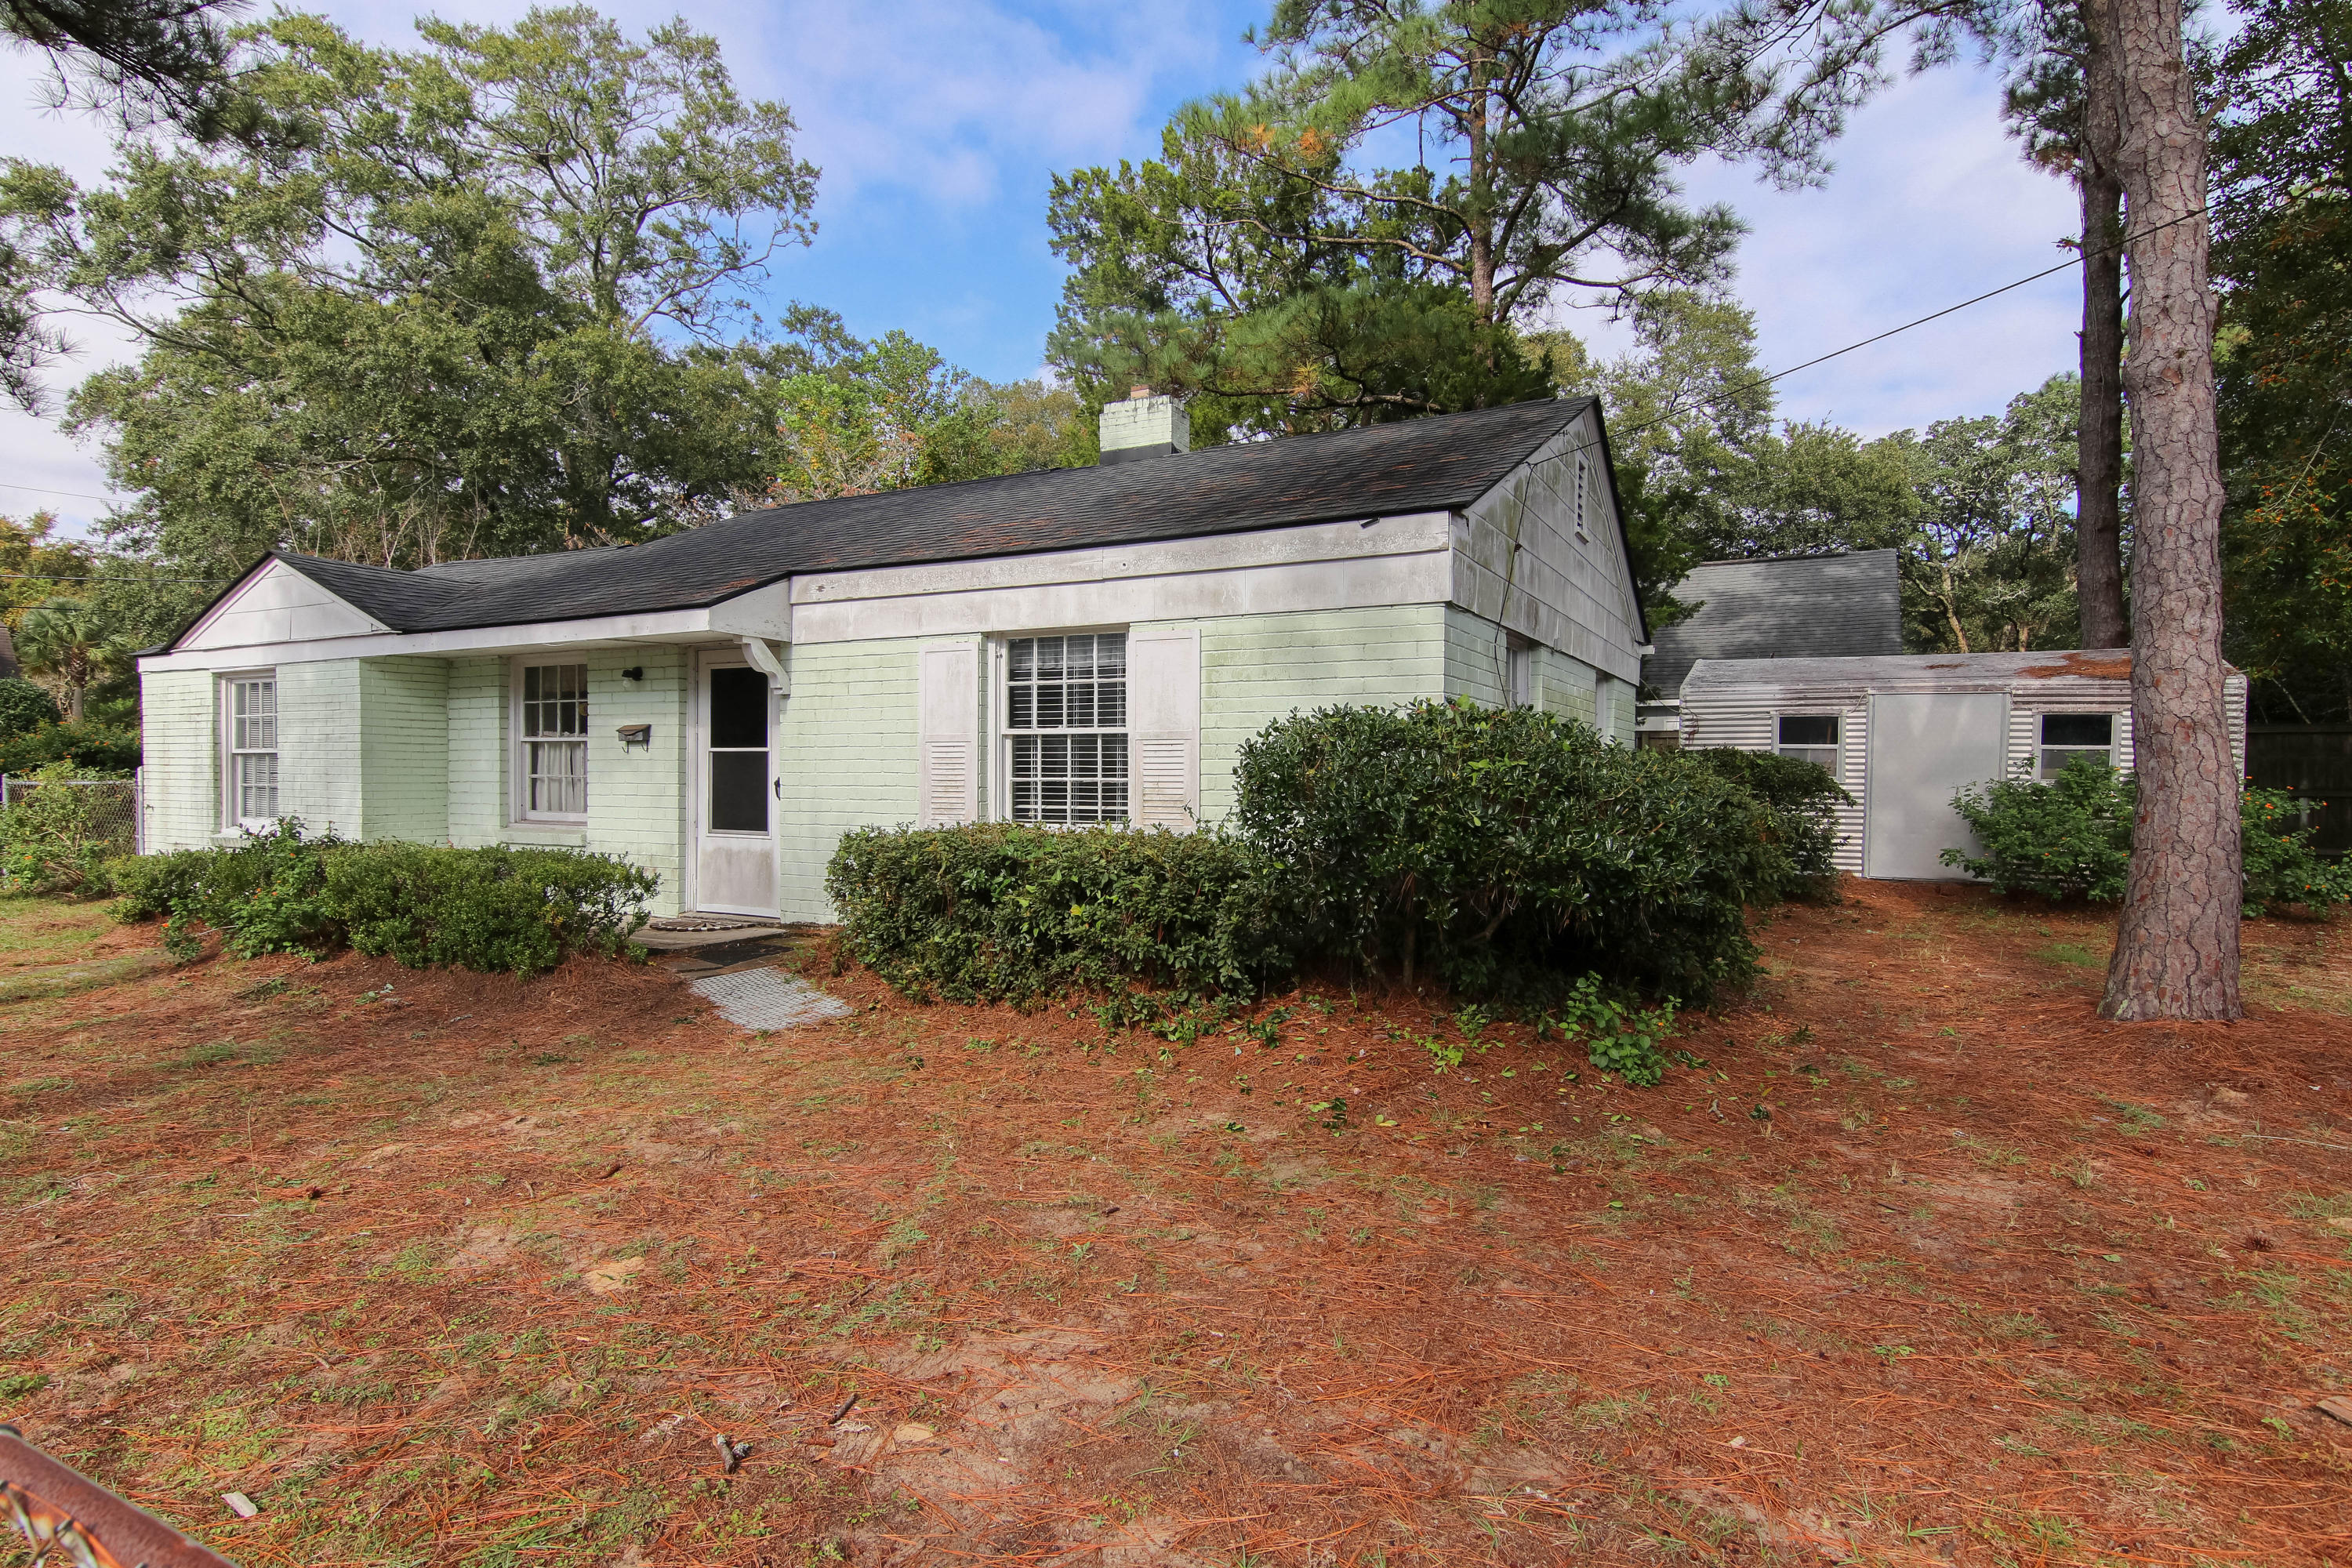 Old Mt Pleasant Homes For Sale - 1106 Simmons, Mount Pleasant, SC - 4